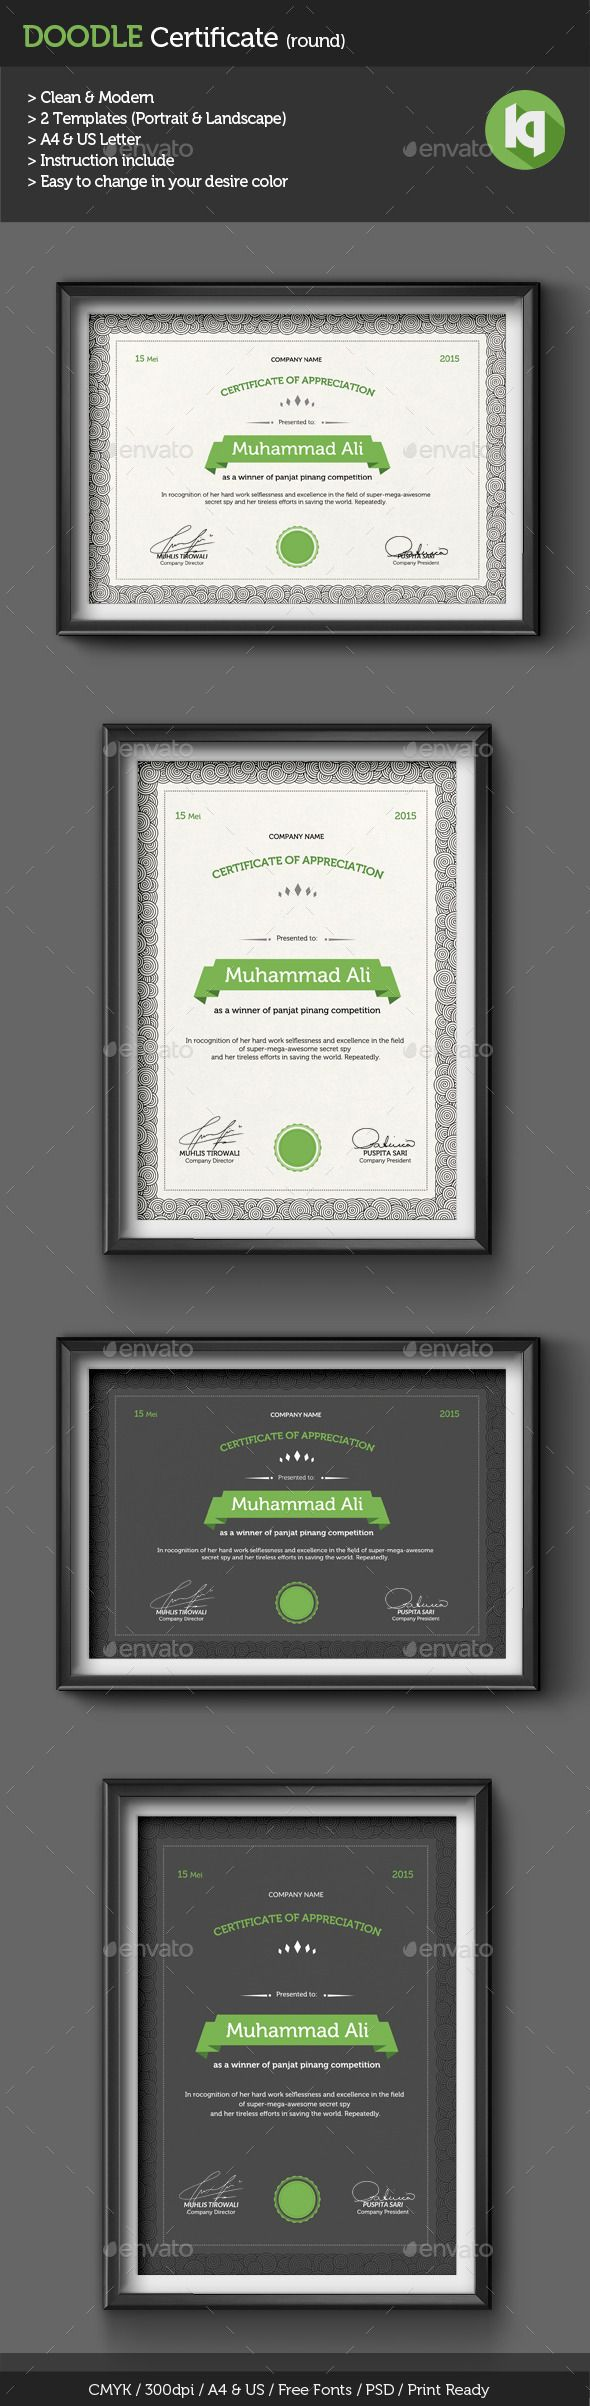 Doodle Certificate A4 & US Template PSD. Download here: http://graphicriver.net/item/doodle-certificate-template-round/10440766?ref=ksioks